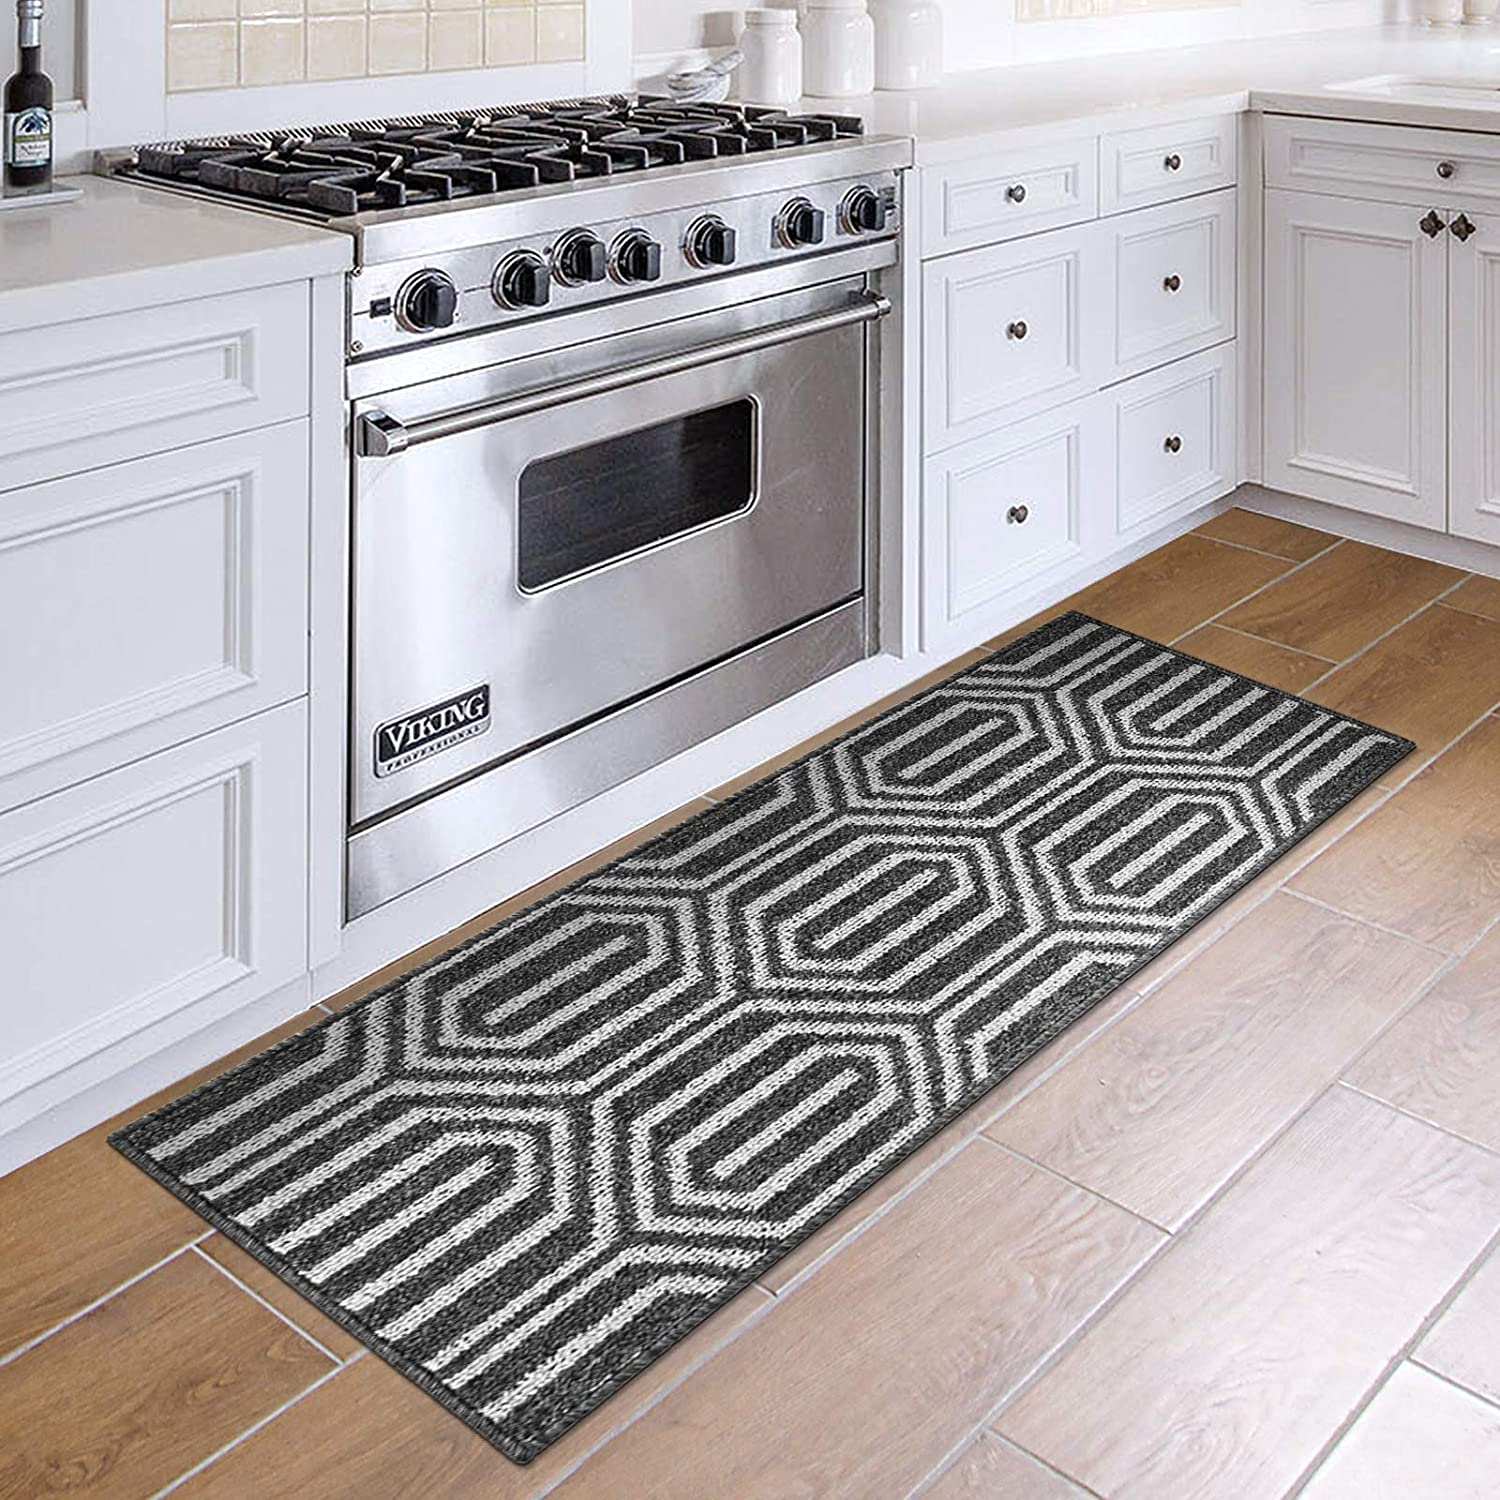 DEXI Kitchen Rug Mat Non Slip Absorbent Runner Rug for Kitchen Floor,  Entryway, Hallway and Dining Room, Machine Washable Carpet 9